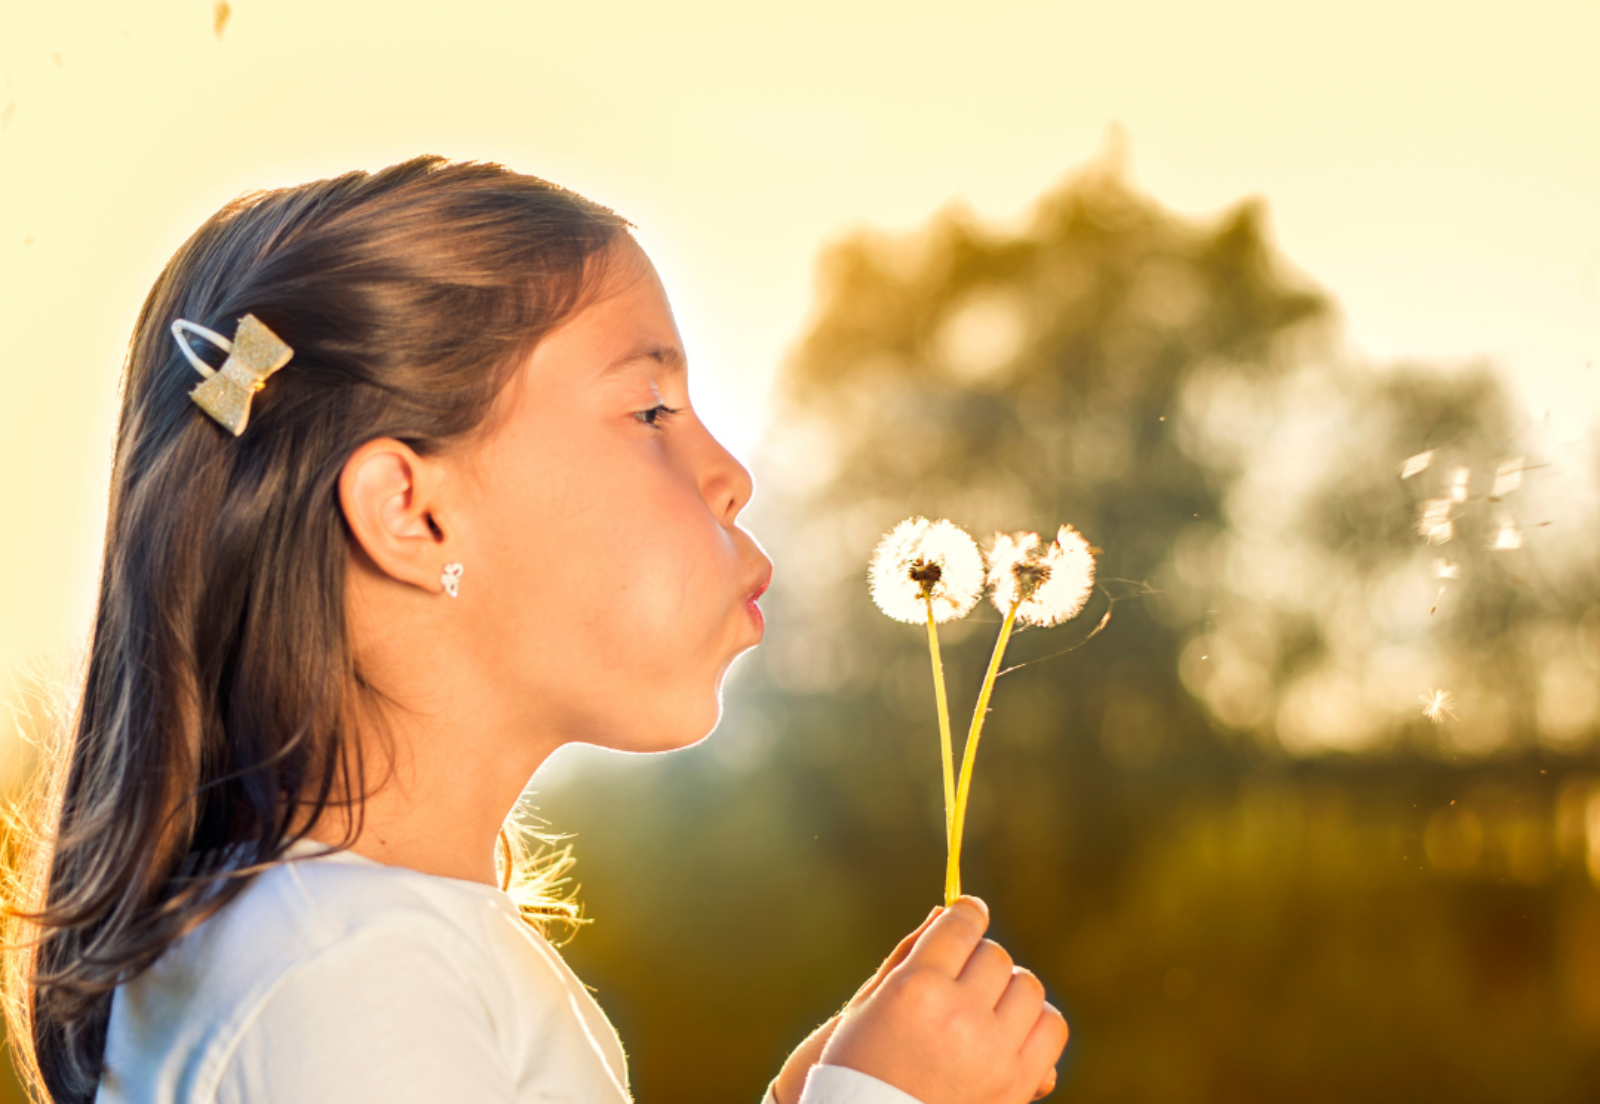 A young person blows the seeds off of a fluffy dandelion